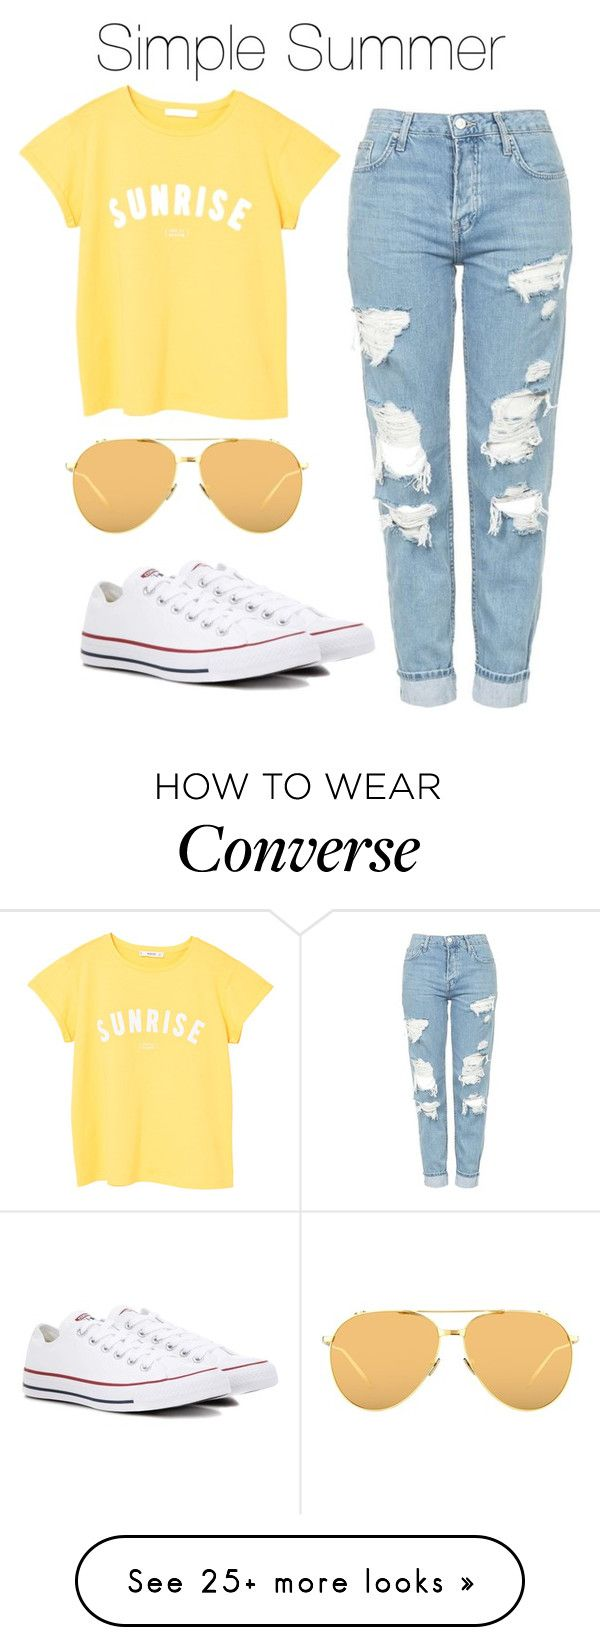 """Simple Summer Outfit"" by bekahlaw04 on Polyvore featuring Topshop, MANGO, Converse and Linda Farrow"